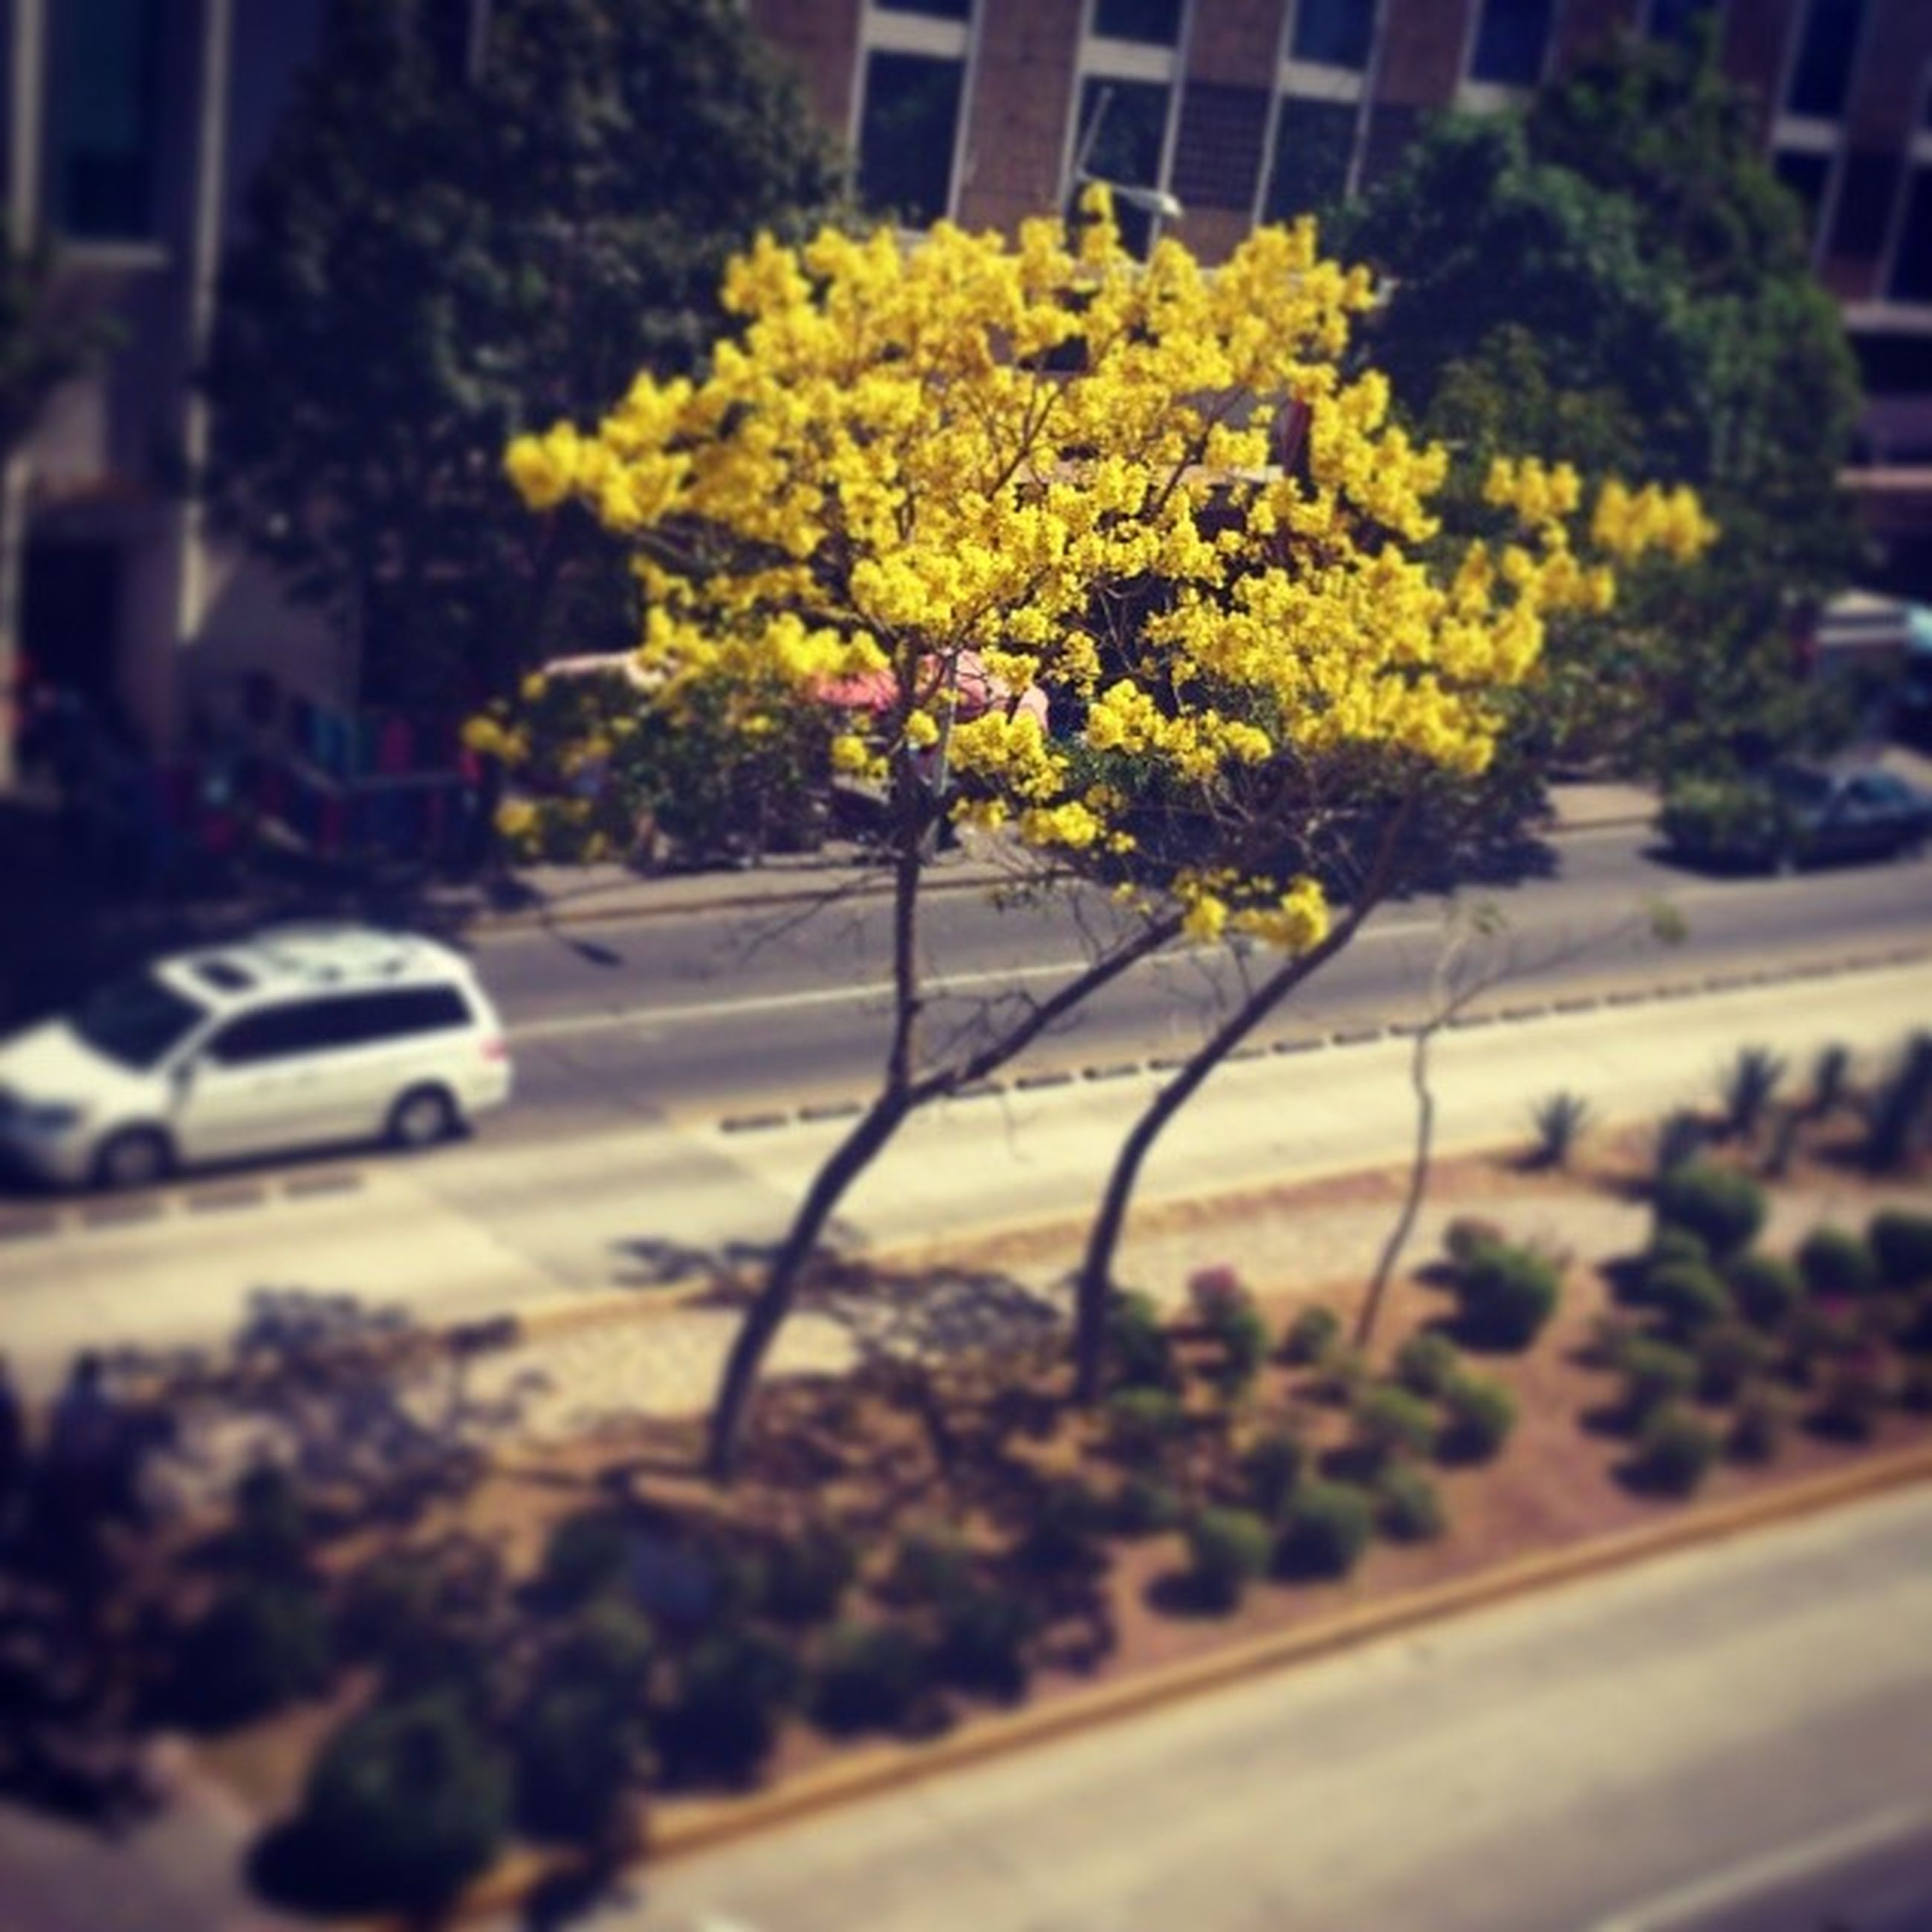 transportation, land vehicle, flower, mode of transport, car, yellow, focus on foreground, street, growth, road, tree, plant, selective focus, building exterior, nature, fragility, outdoors, day, close-up, freshness